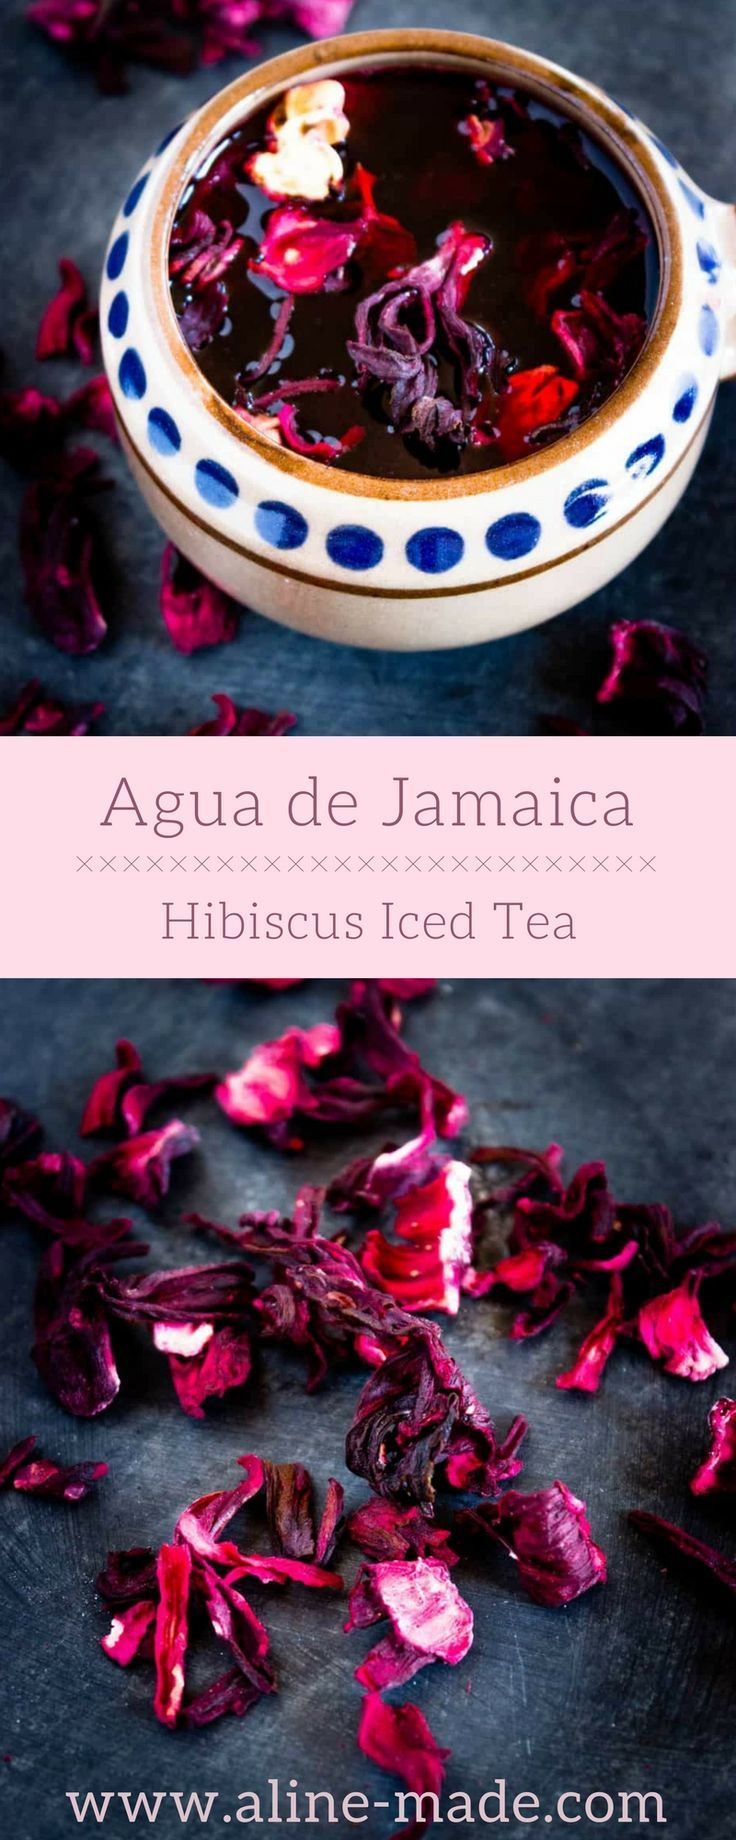 Agua de Jamaica or Hibiscus Iced Tea. It's made of dried hibiscus flowers, which are called Flor de Jamaica in Mexico. A straightforward procedure, you just have to add dried hibiscus flowers into boiling water, leave them to steep for 10 minutes, add some sugar and pour your mixture through a sieve. Finished. You can either drink it warm or serve it cold.